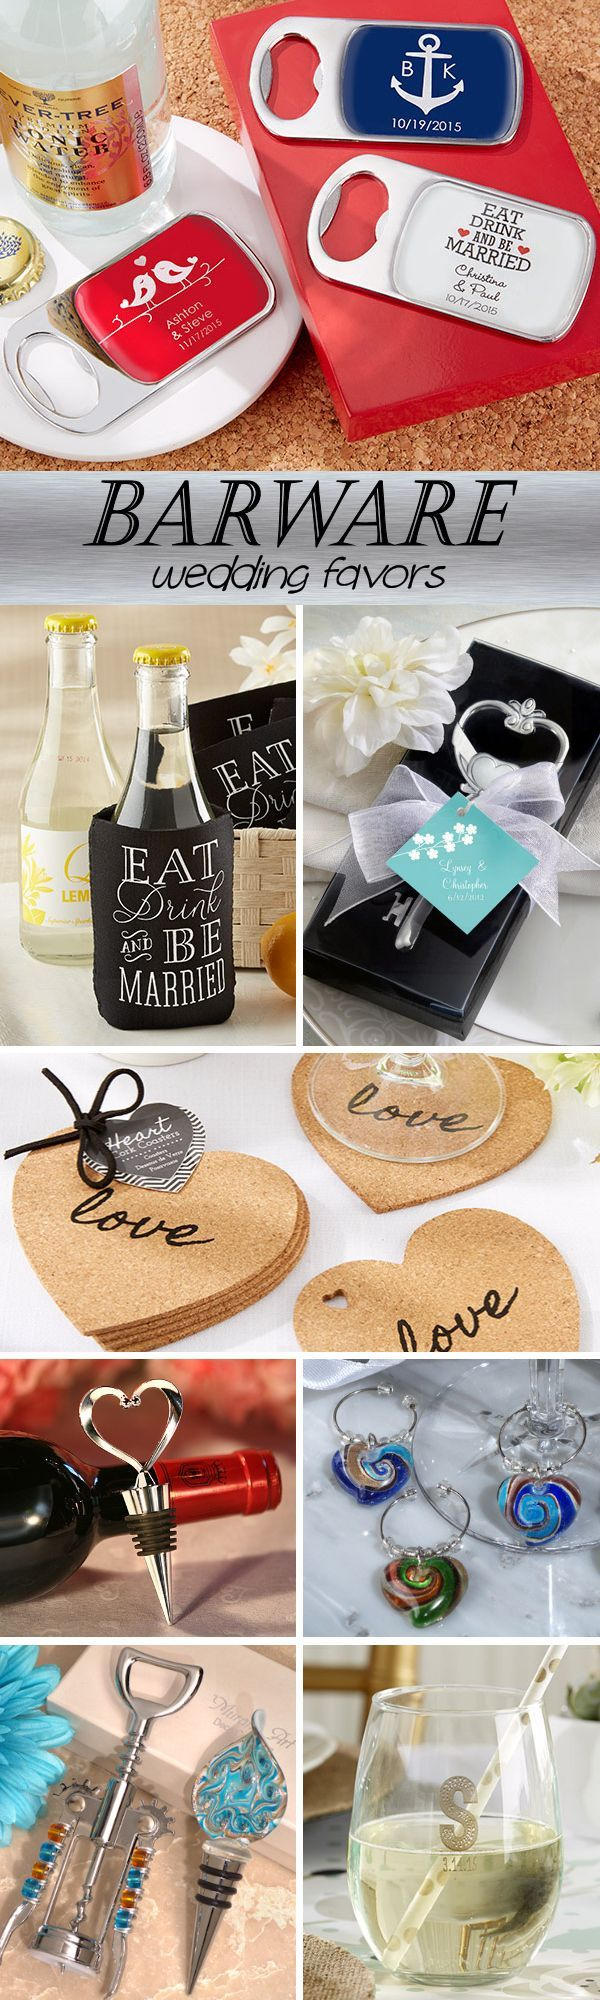 Best 20 Wine favors ideas on Pinterest Wine bottle favors Wine